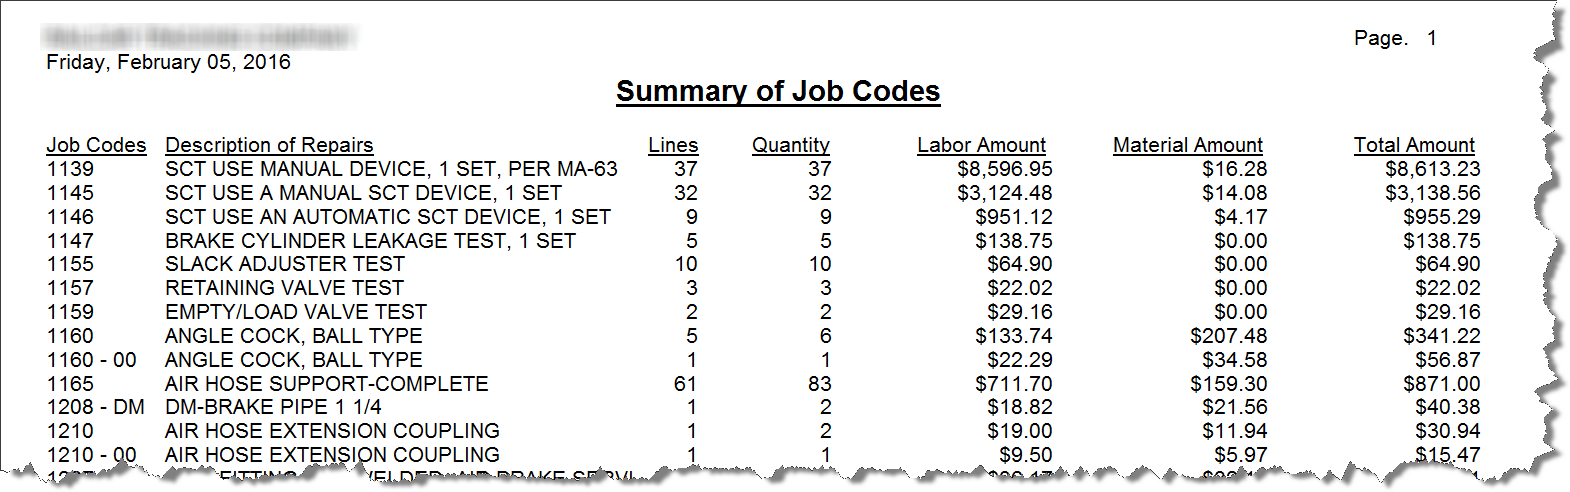 job-codes-report